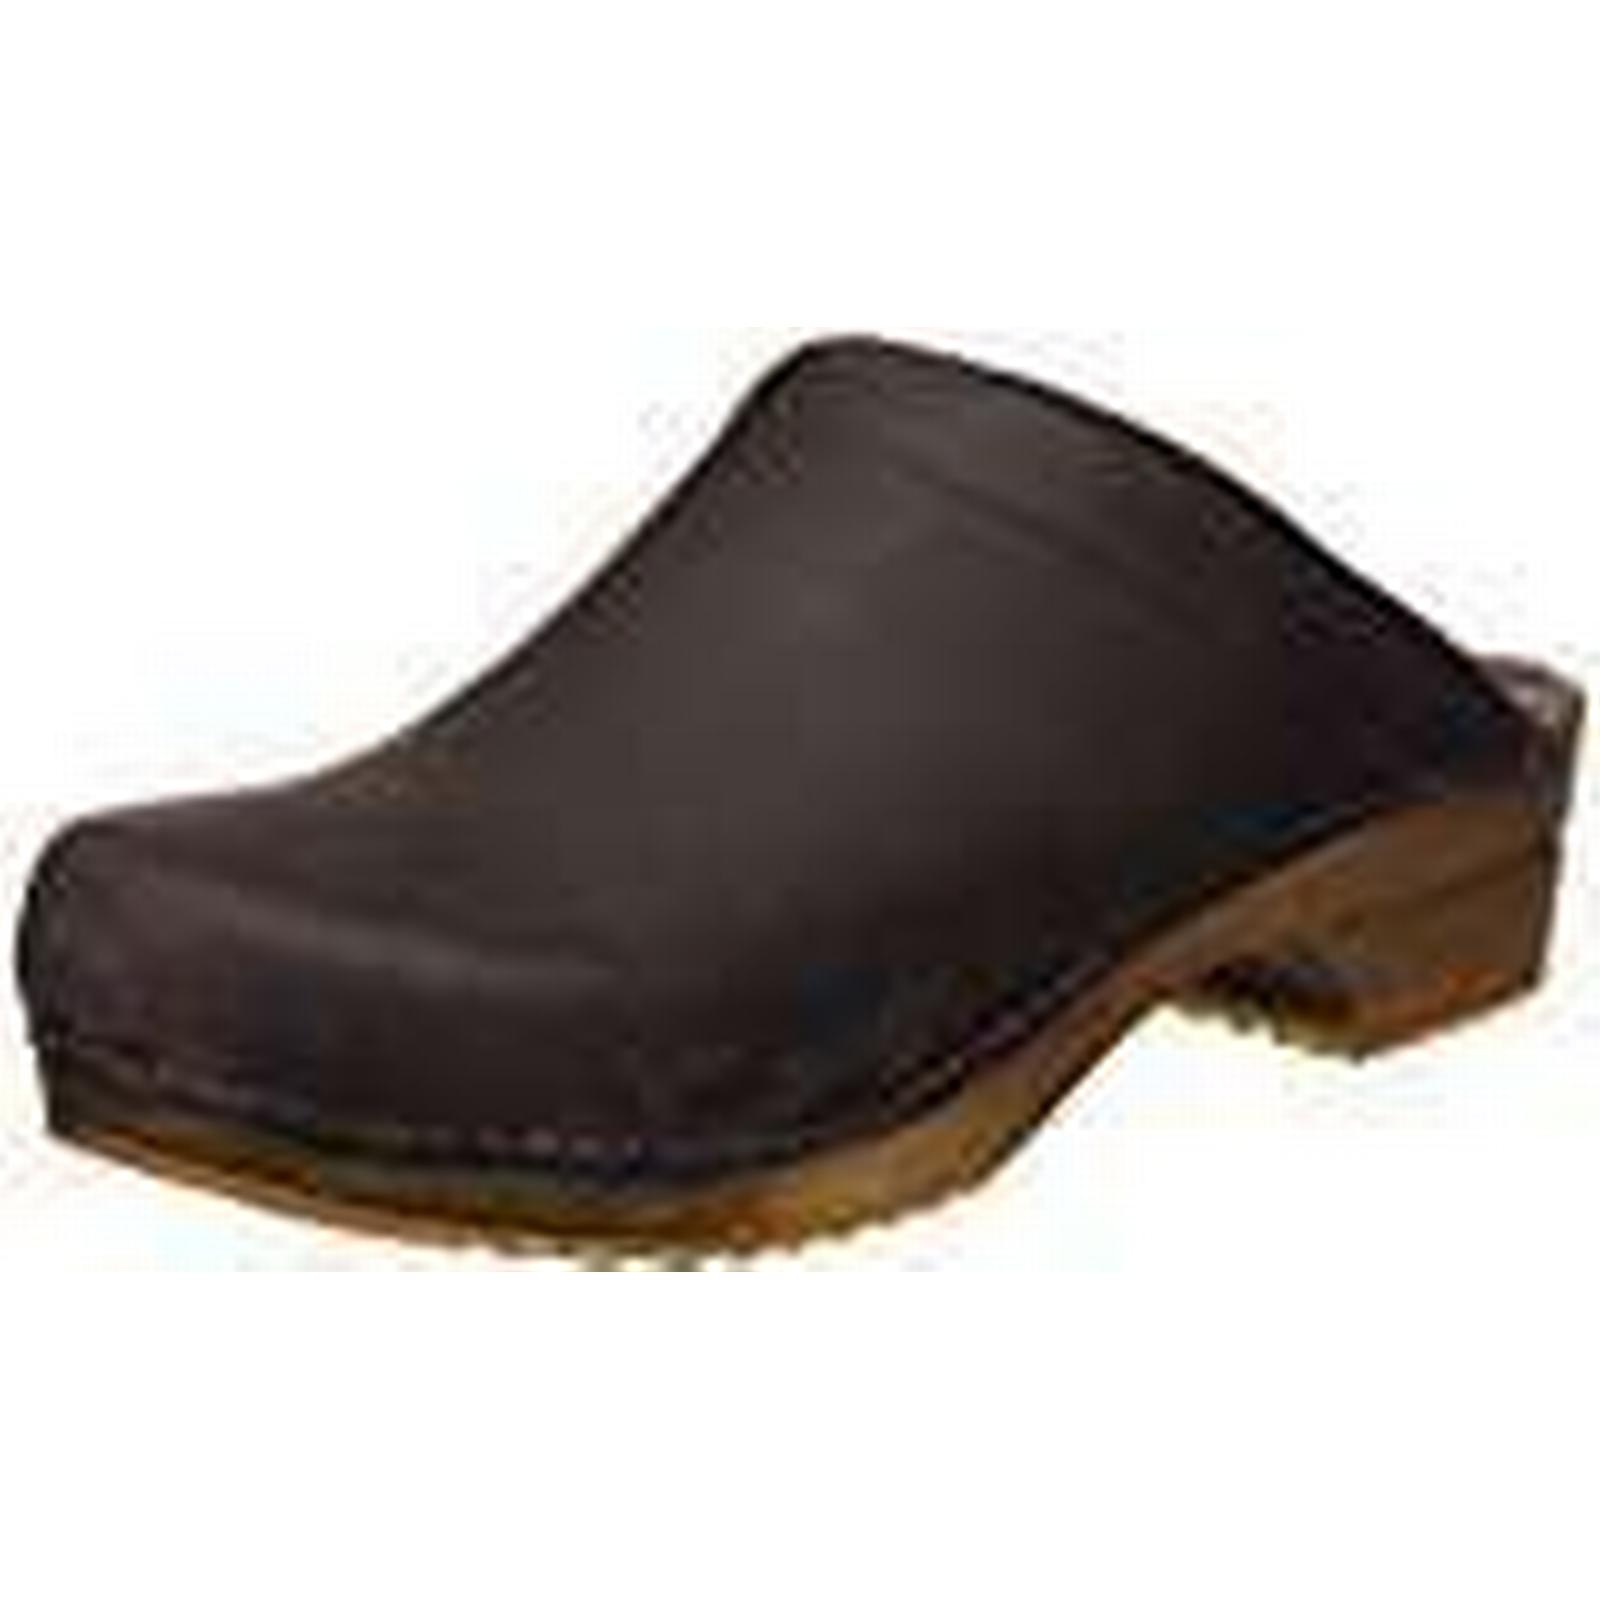 Sanita Wood Chrissy Open, Women's Mules and (41 Clogs Clogs, Antique Brown, (41 and EU) 875993